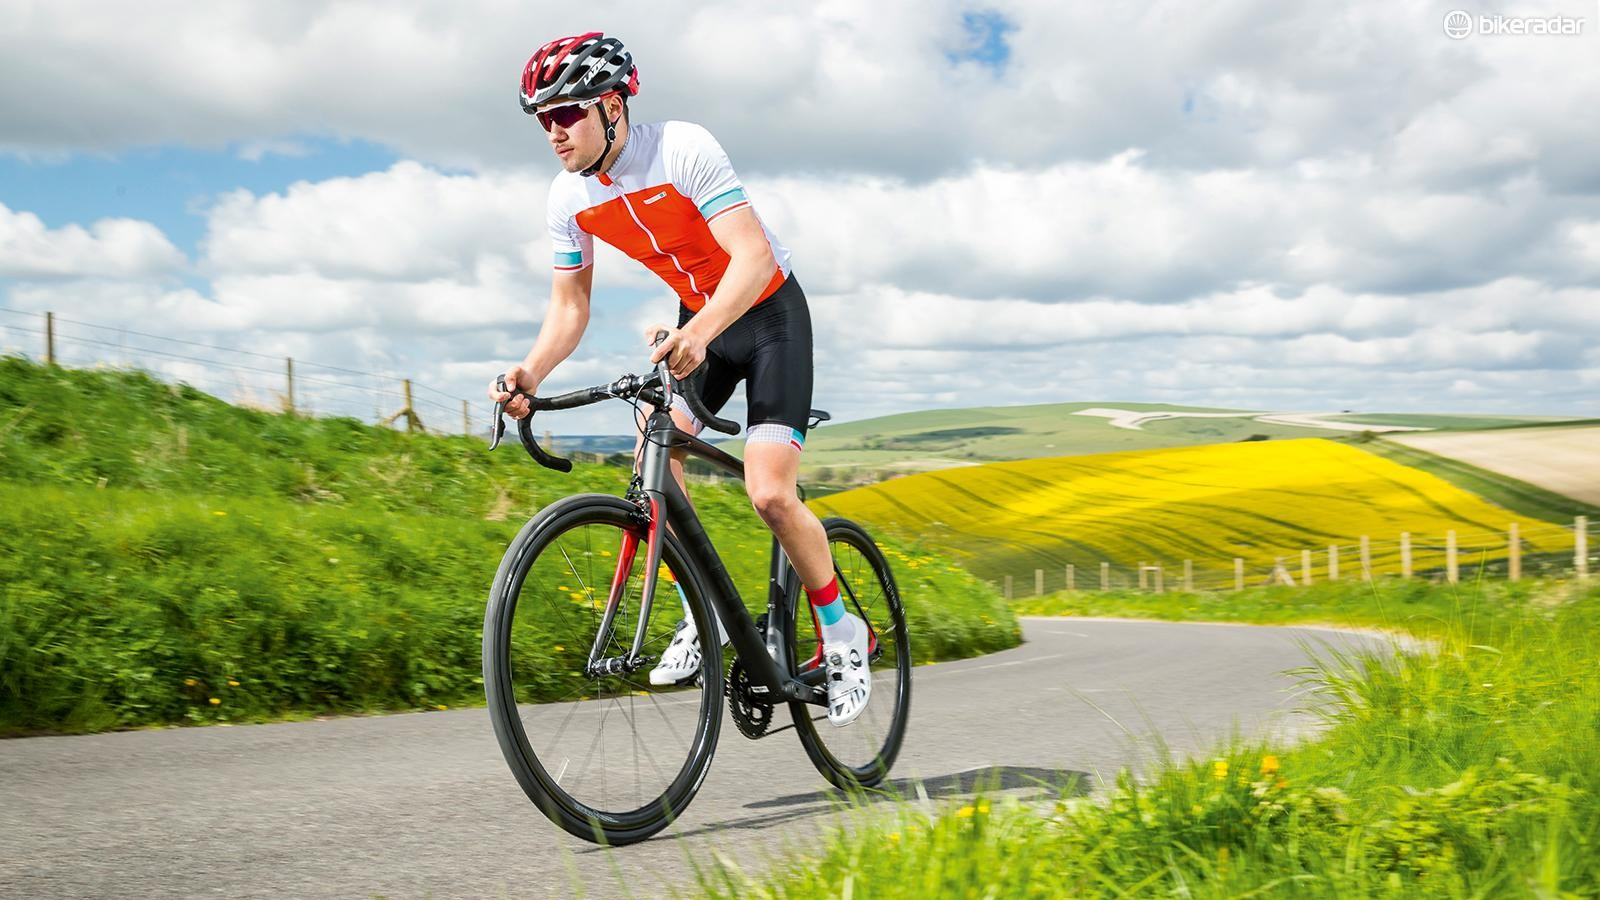 When it comes to travelling quickly, the Domane SLR is as effective as any road bike available